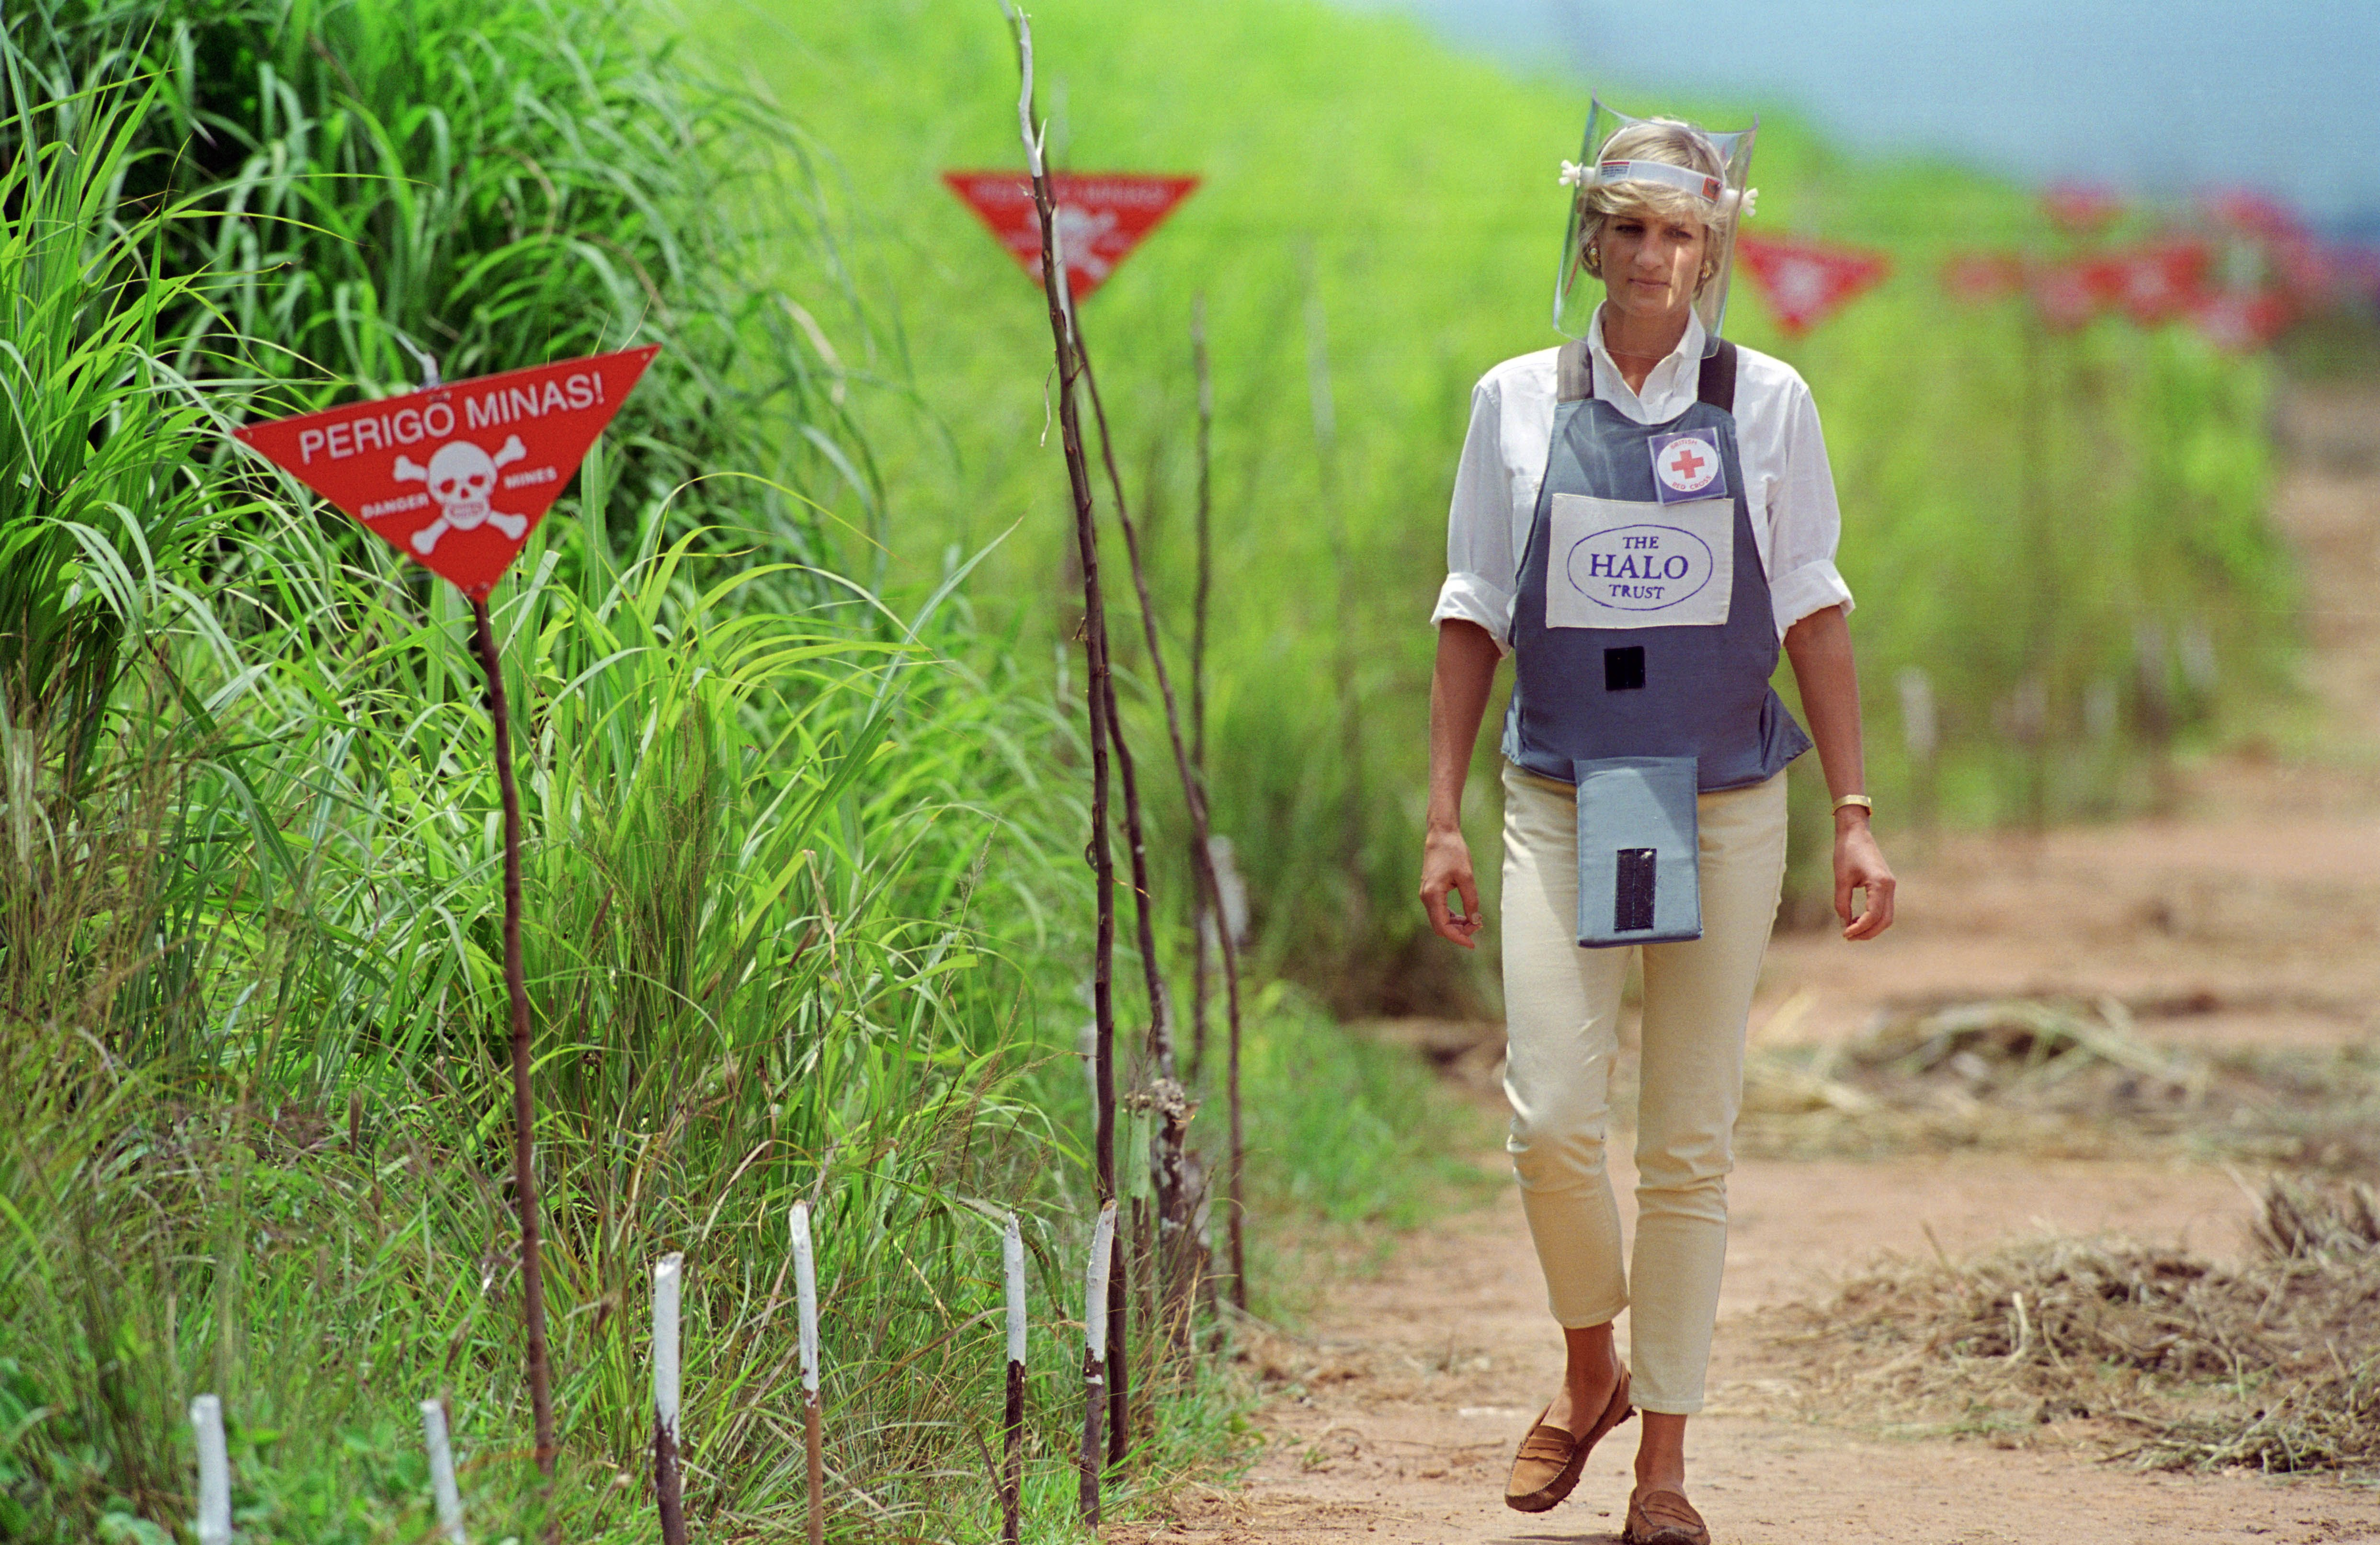 Diana, Princess of Wales wearing protective body armour and a visor visits a landmine minefield being cleared by the charity Halo in Huambo, Angola